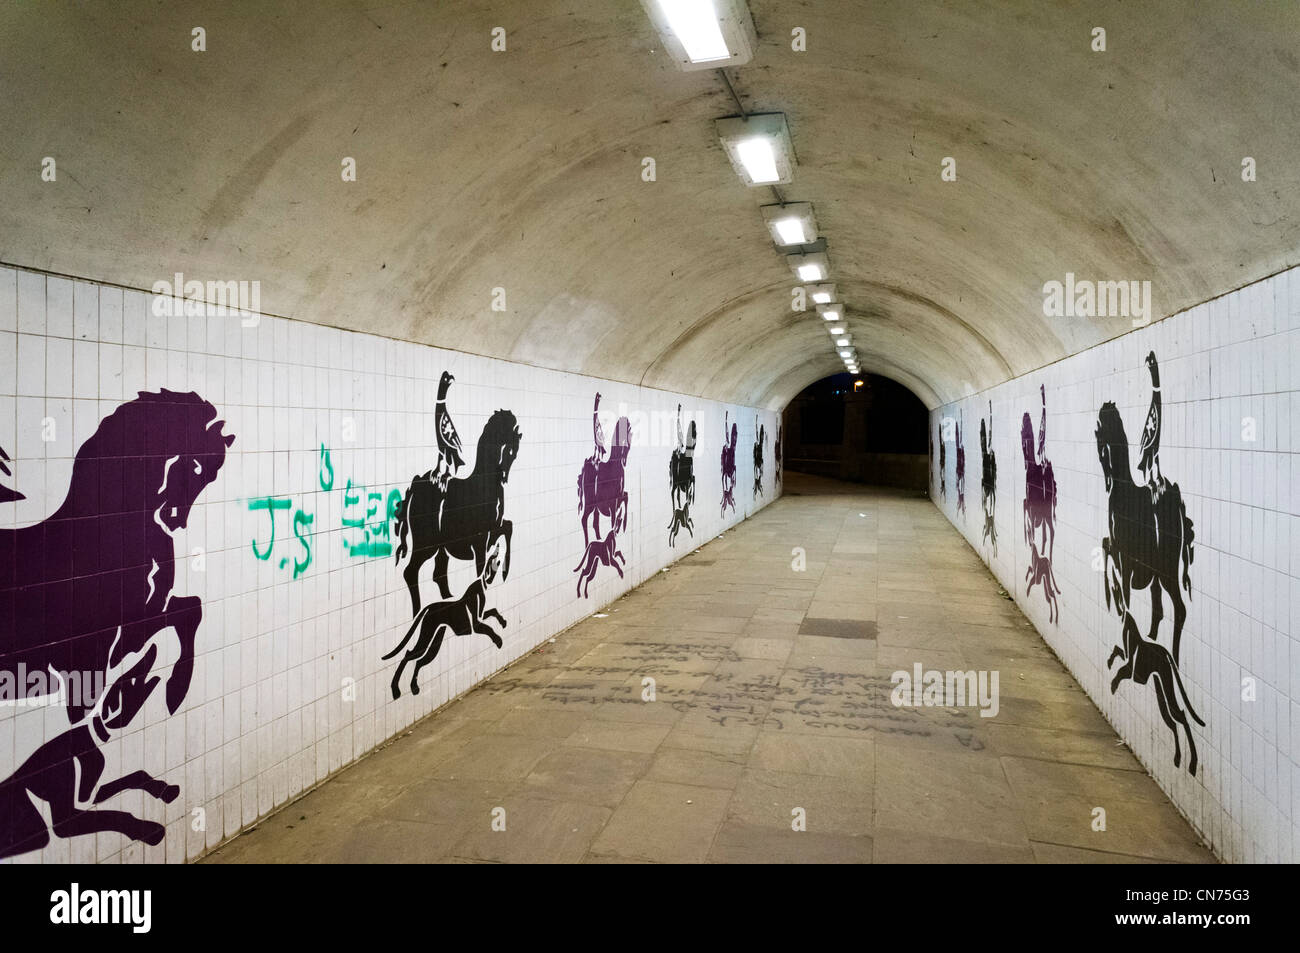 Empty pedestrian subway (underpass) at night, Leeds, West Yorkshire, England - Stock Image